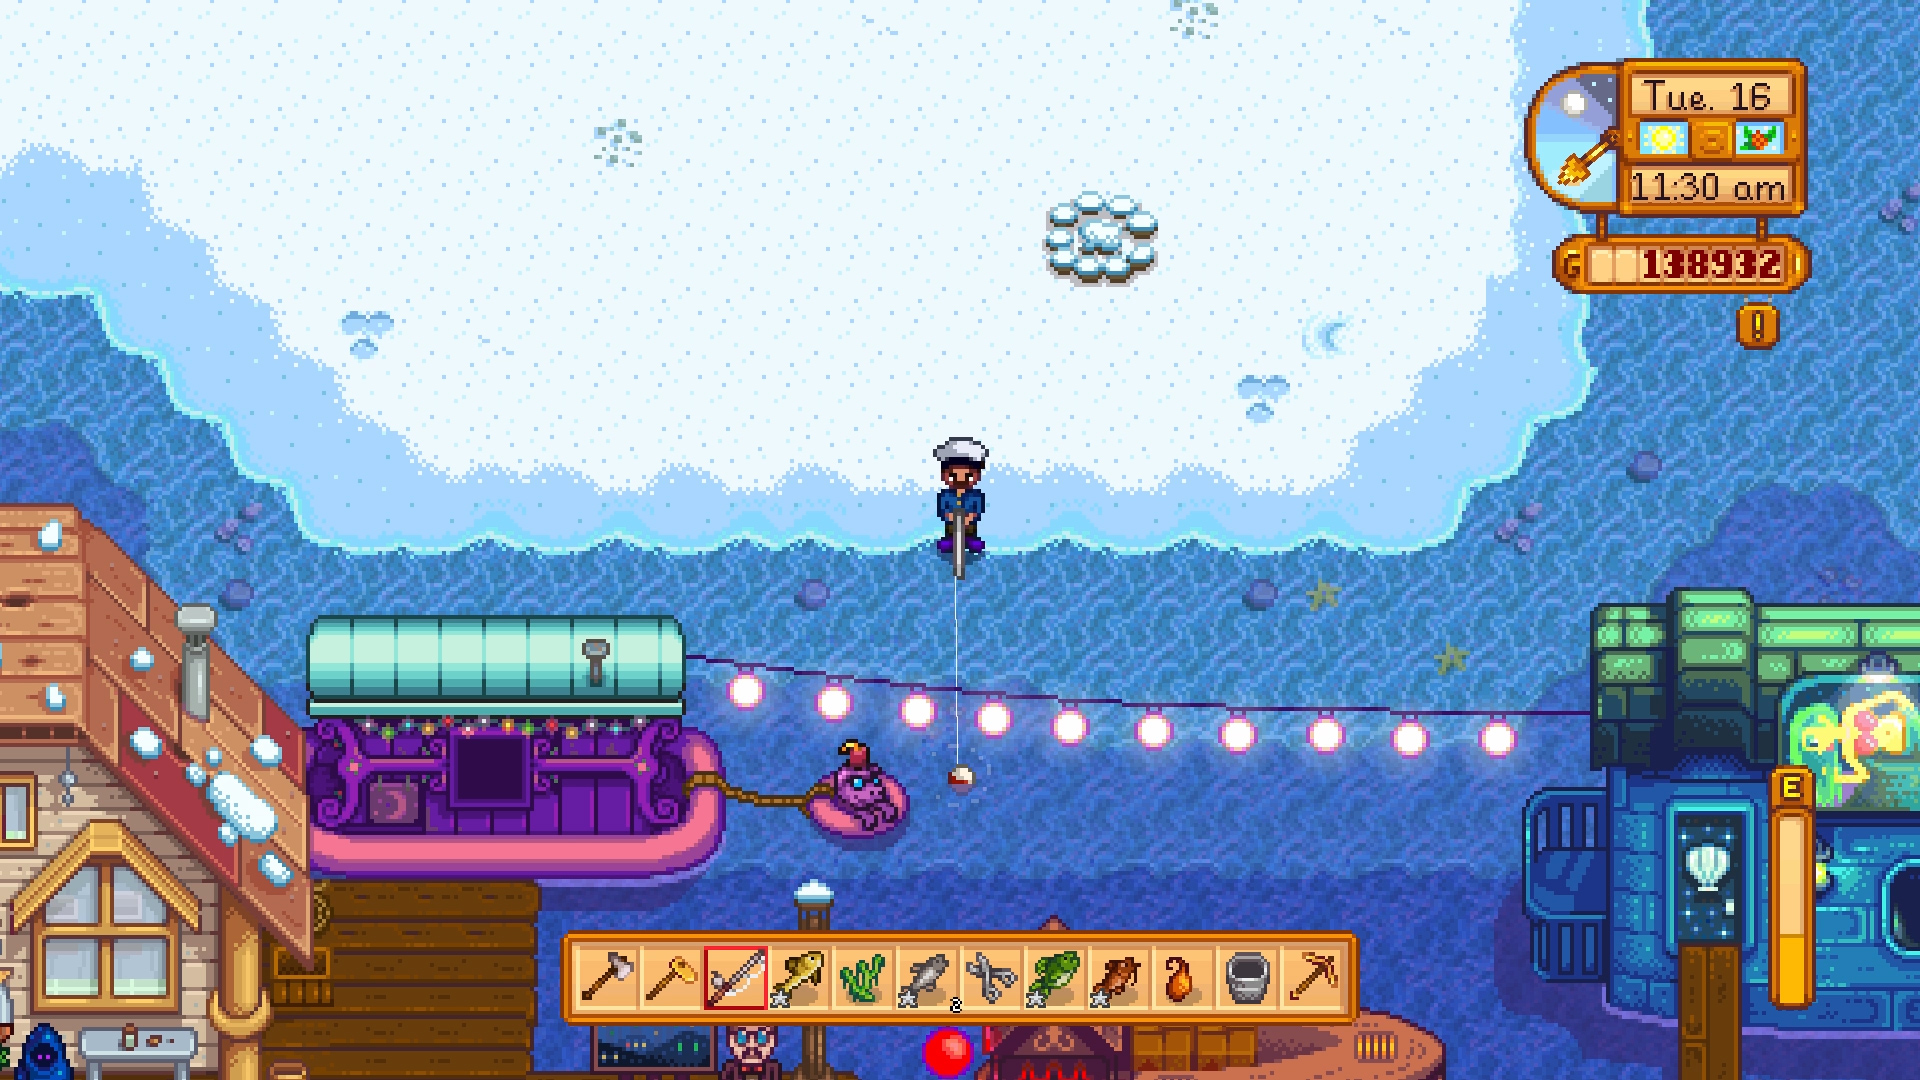 I'm playing Stardew Valley as Ernest Hemingway and I finally learned how to fish